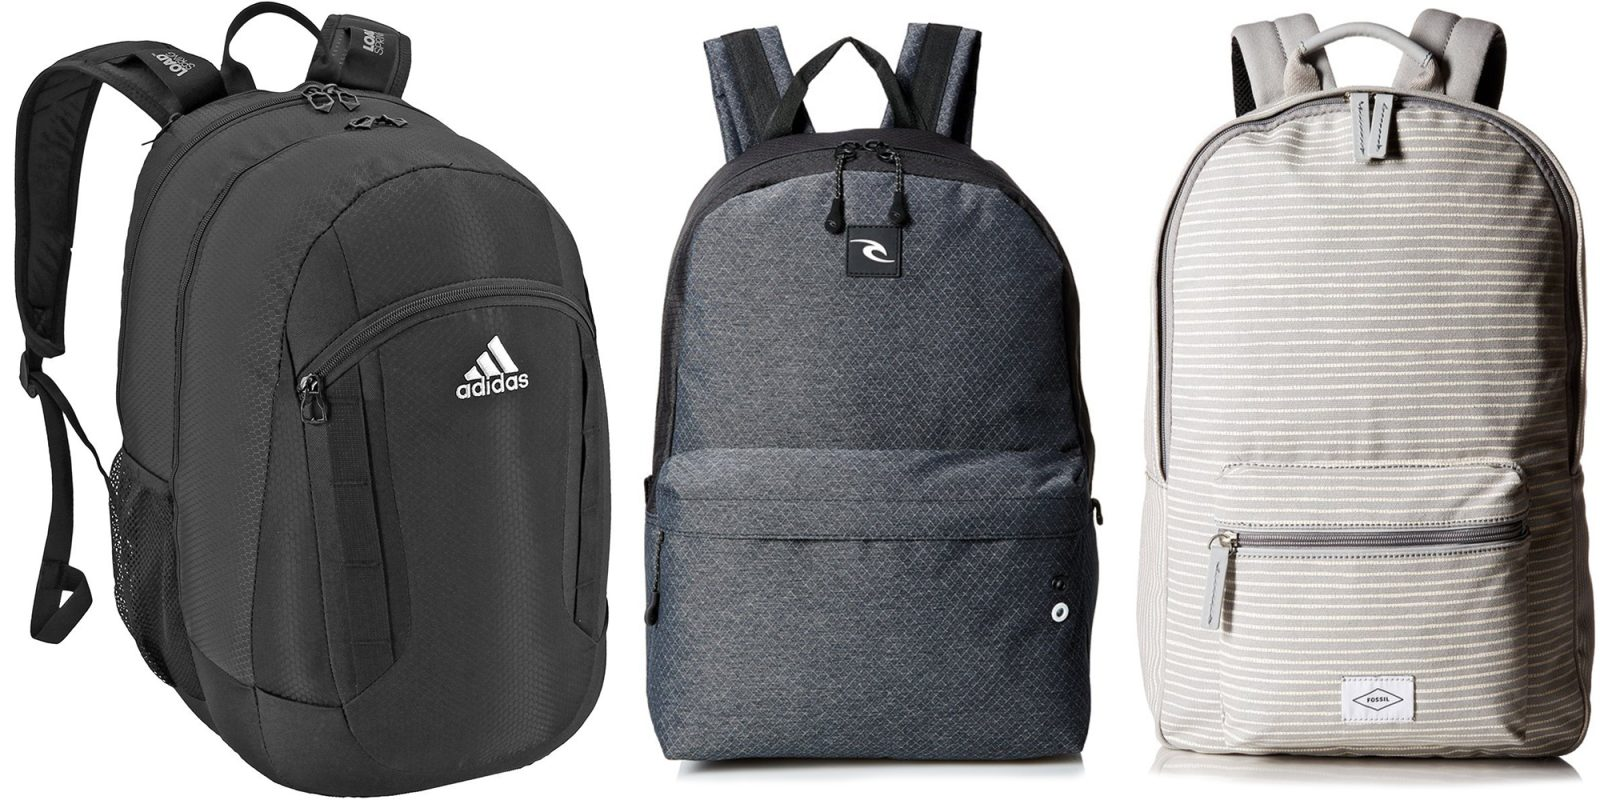 d3adb0dab823 Today s Amazon Gold Box is loaded with deals on backpacks and messenger  bags from adidas